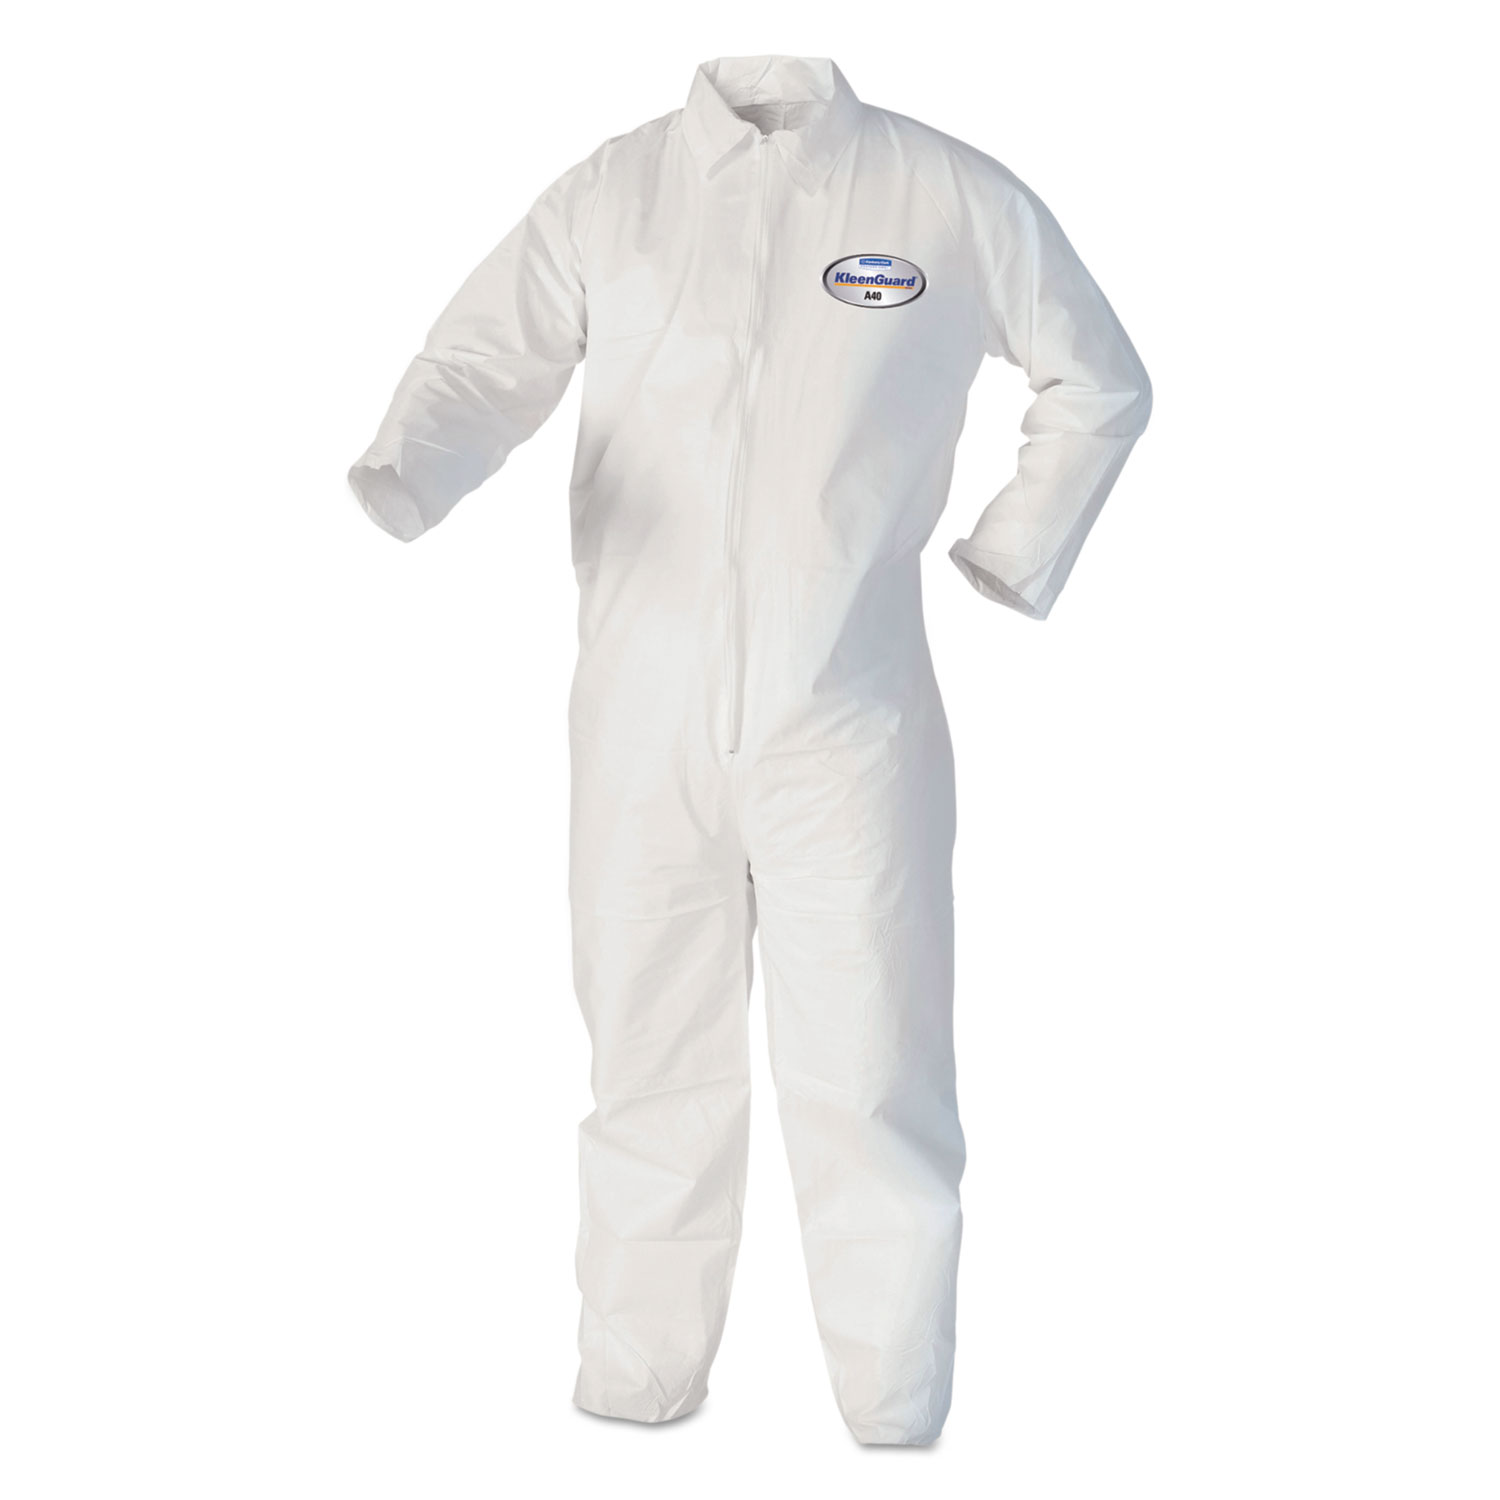 KleenGuard* A40 Coveralls, X-Large, White